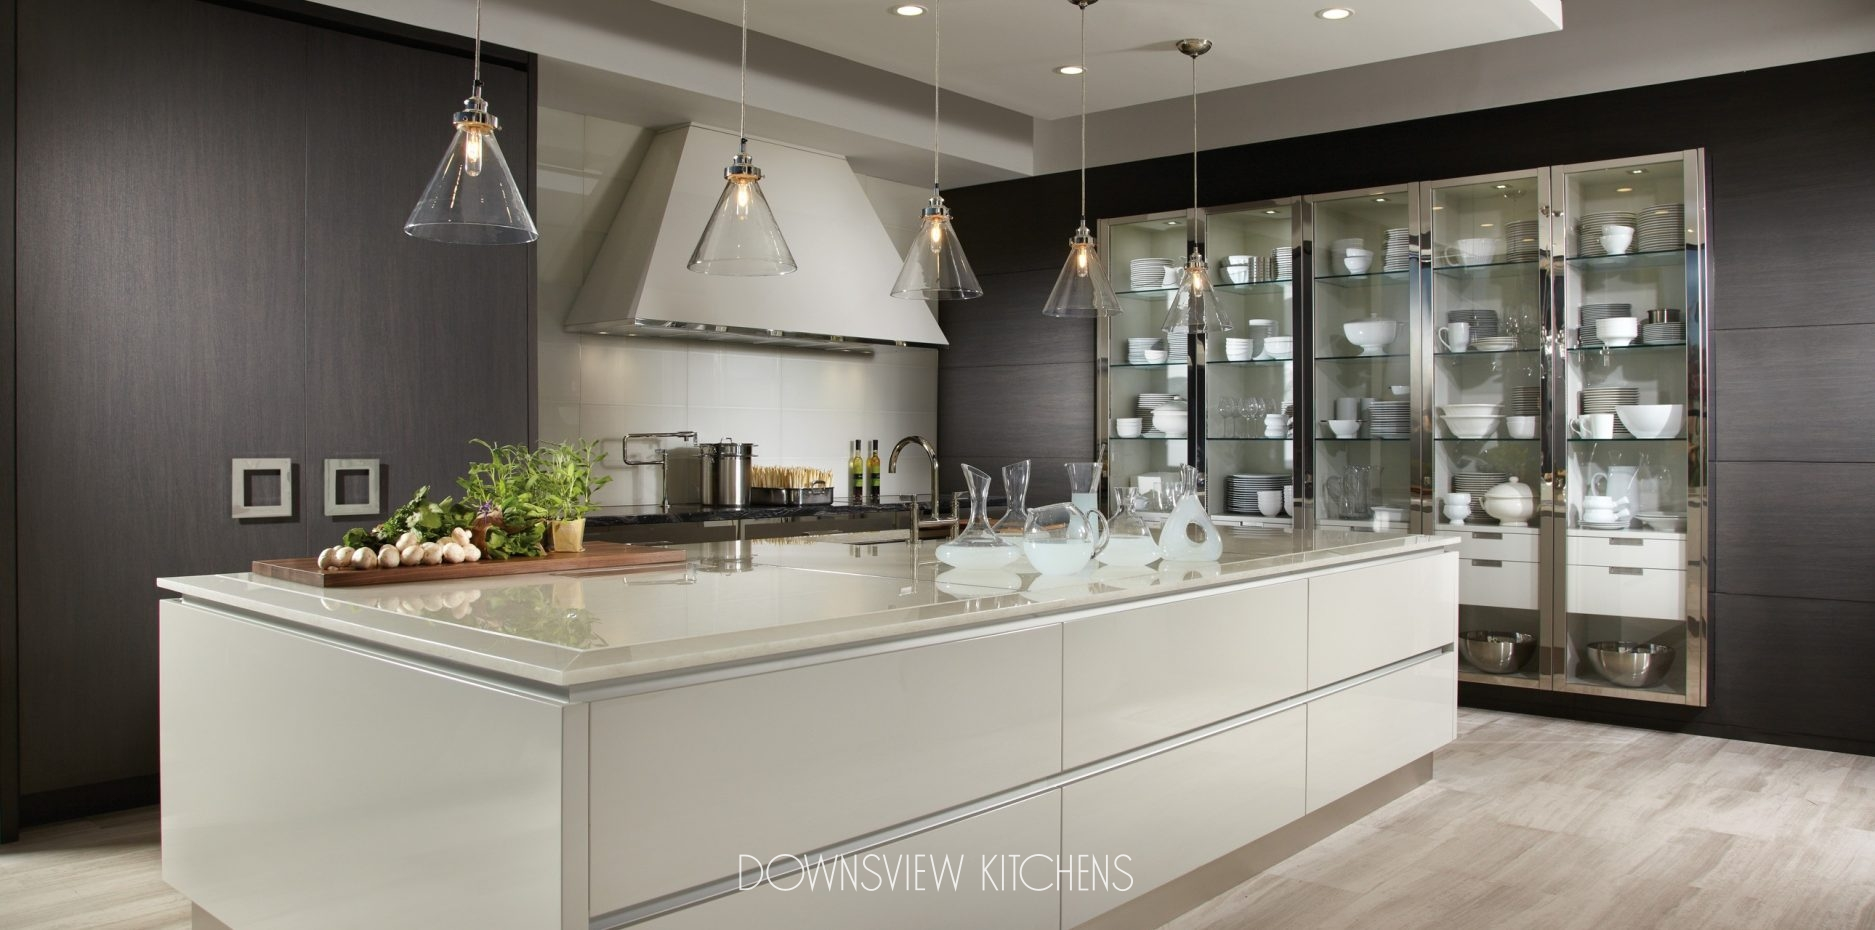 kitchen cabinet manufacturers canada aid tv offer modern reflections downsview kitchens and fine custom